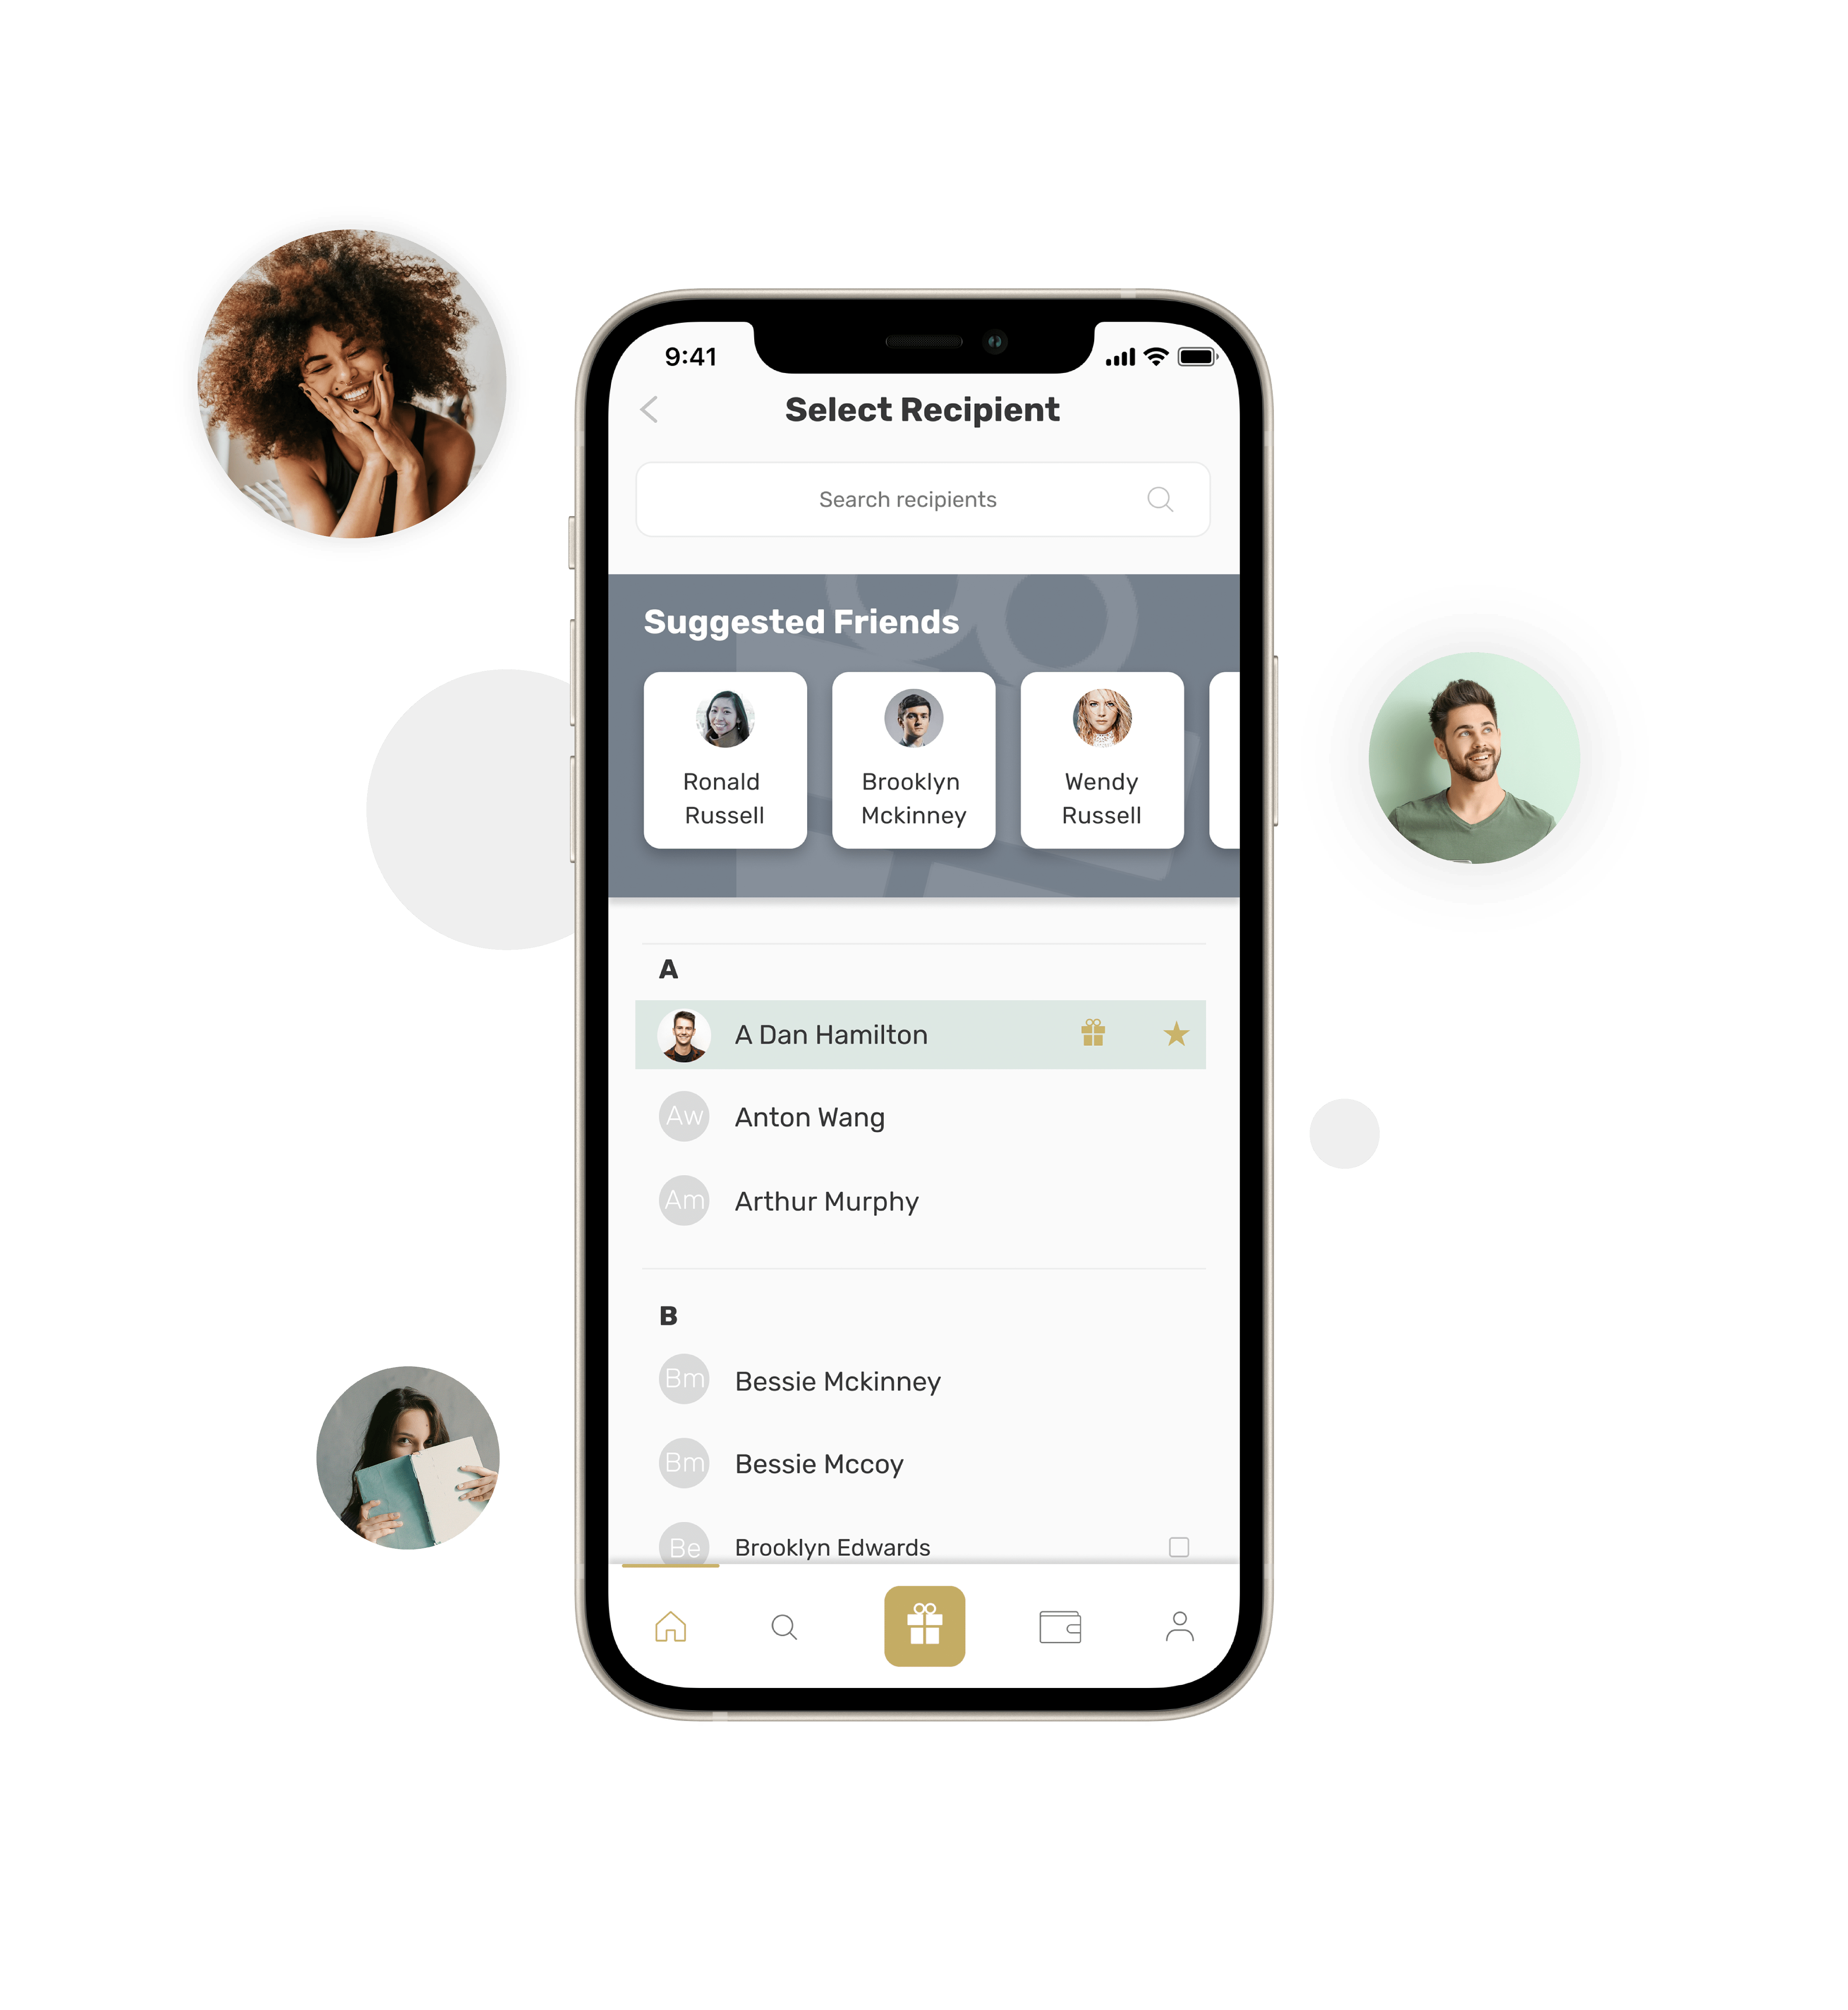 Select recipient Prsnt app with users faces